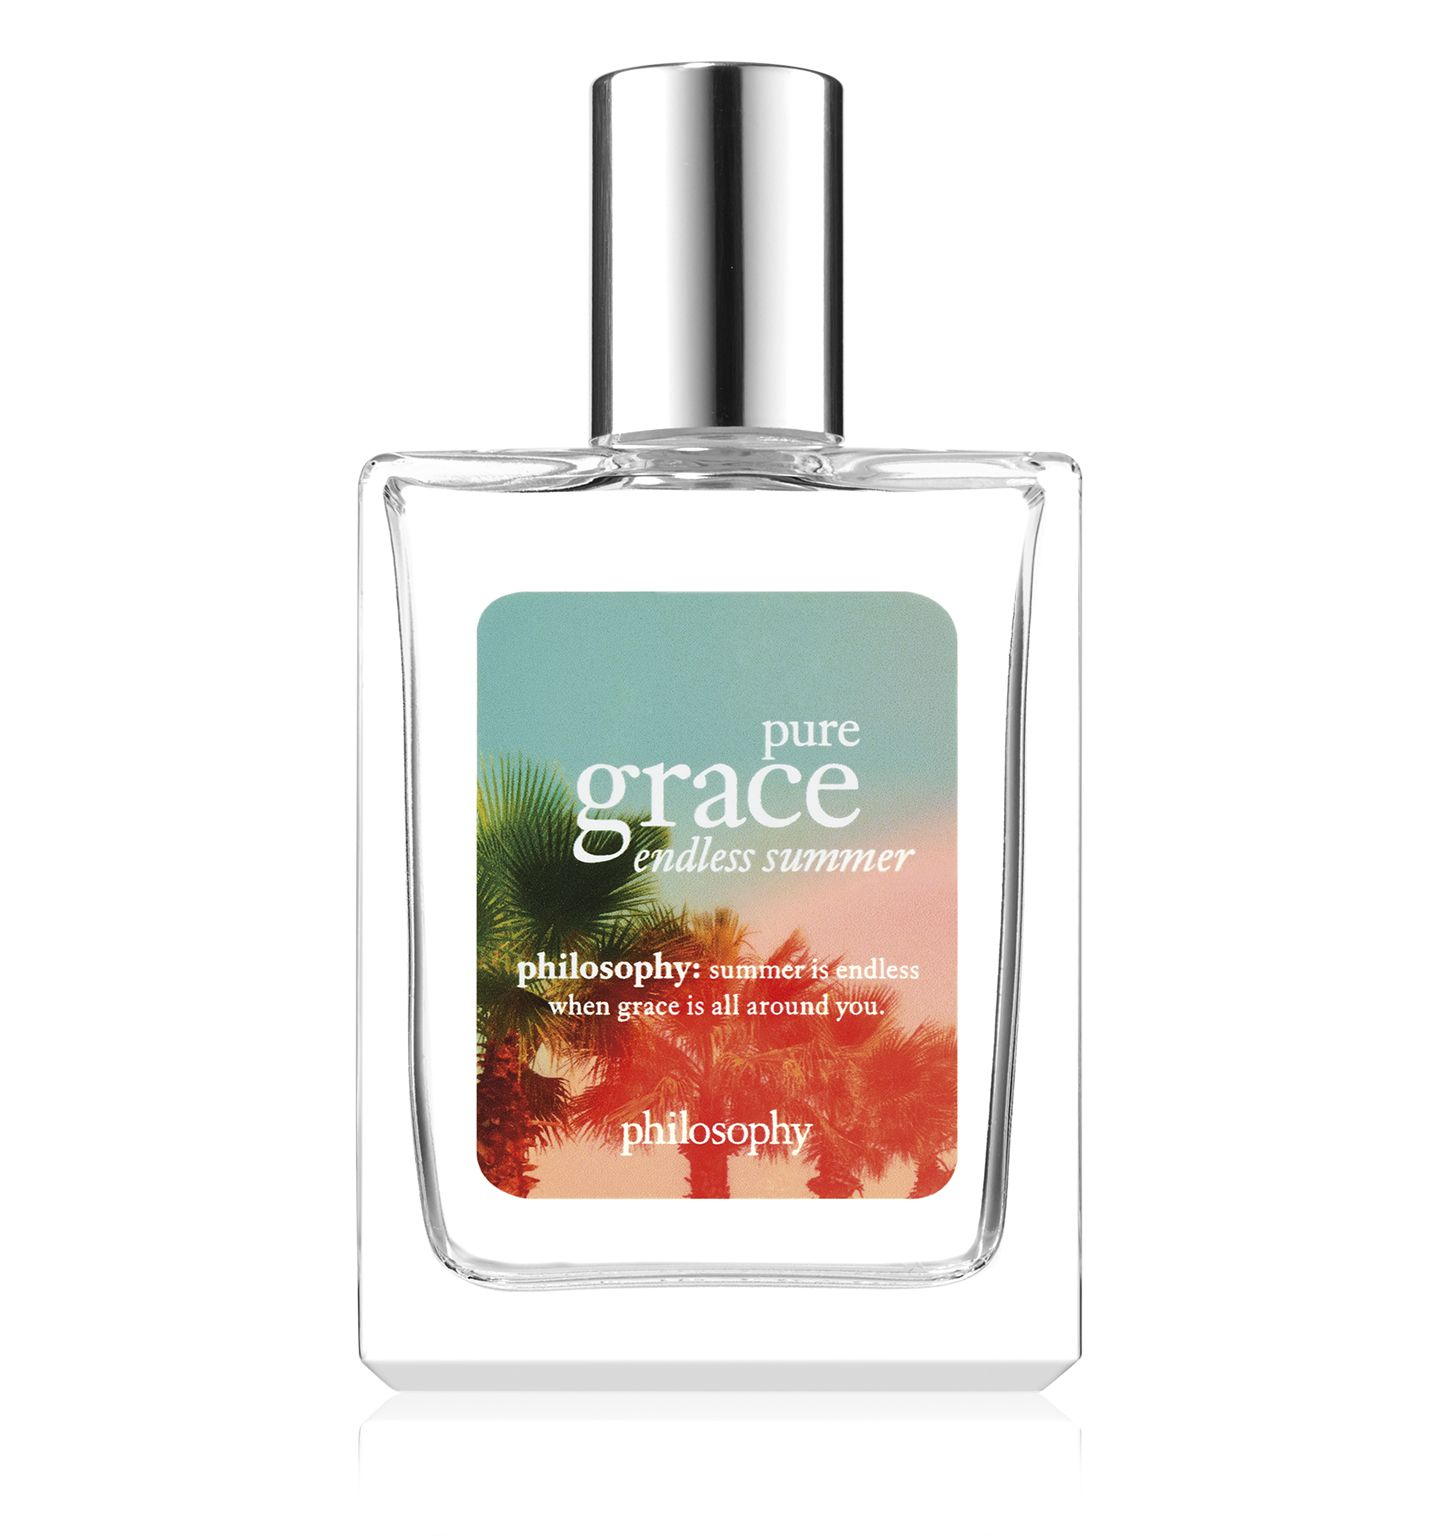 Pure Grace Endless Summer In 2021 Pure Products Summer Perfume Amazing Grace Perfume